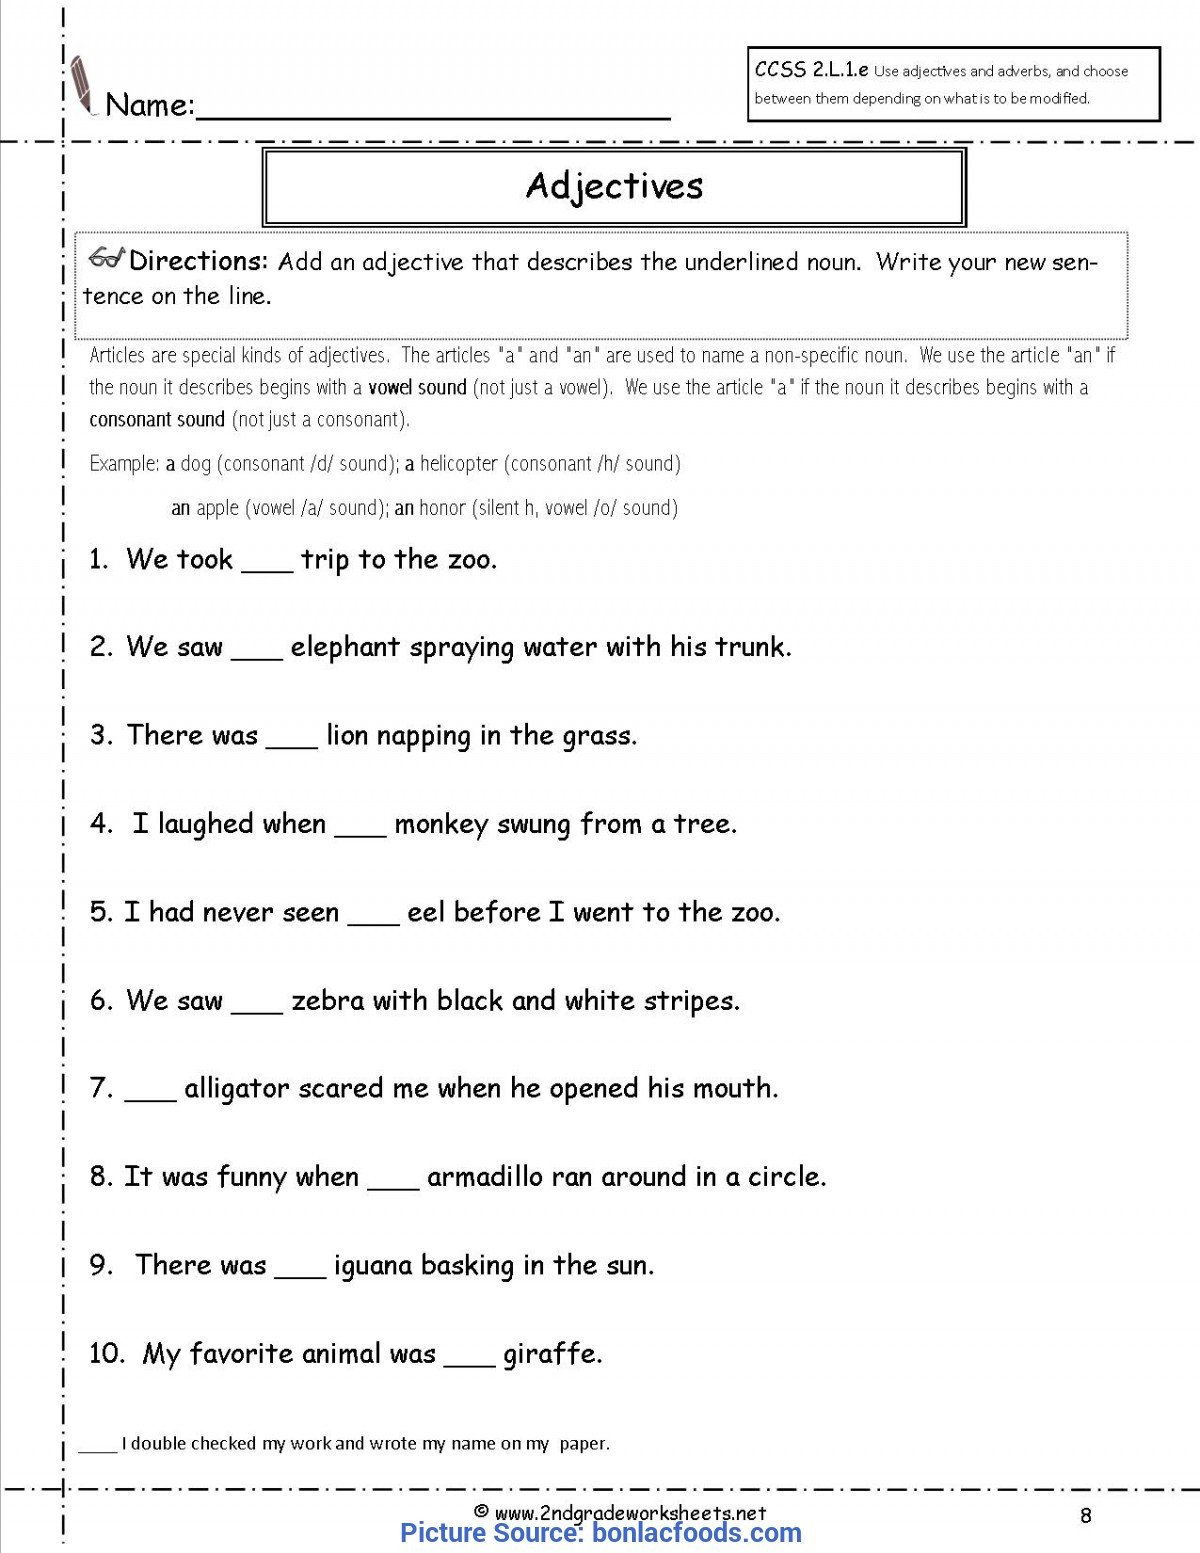 Adjective Worksheets 2nd Grade Valuable 2nd Grade Lesson Plans Adjectives Worksheets for